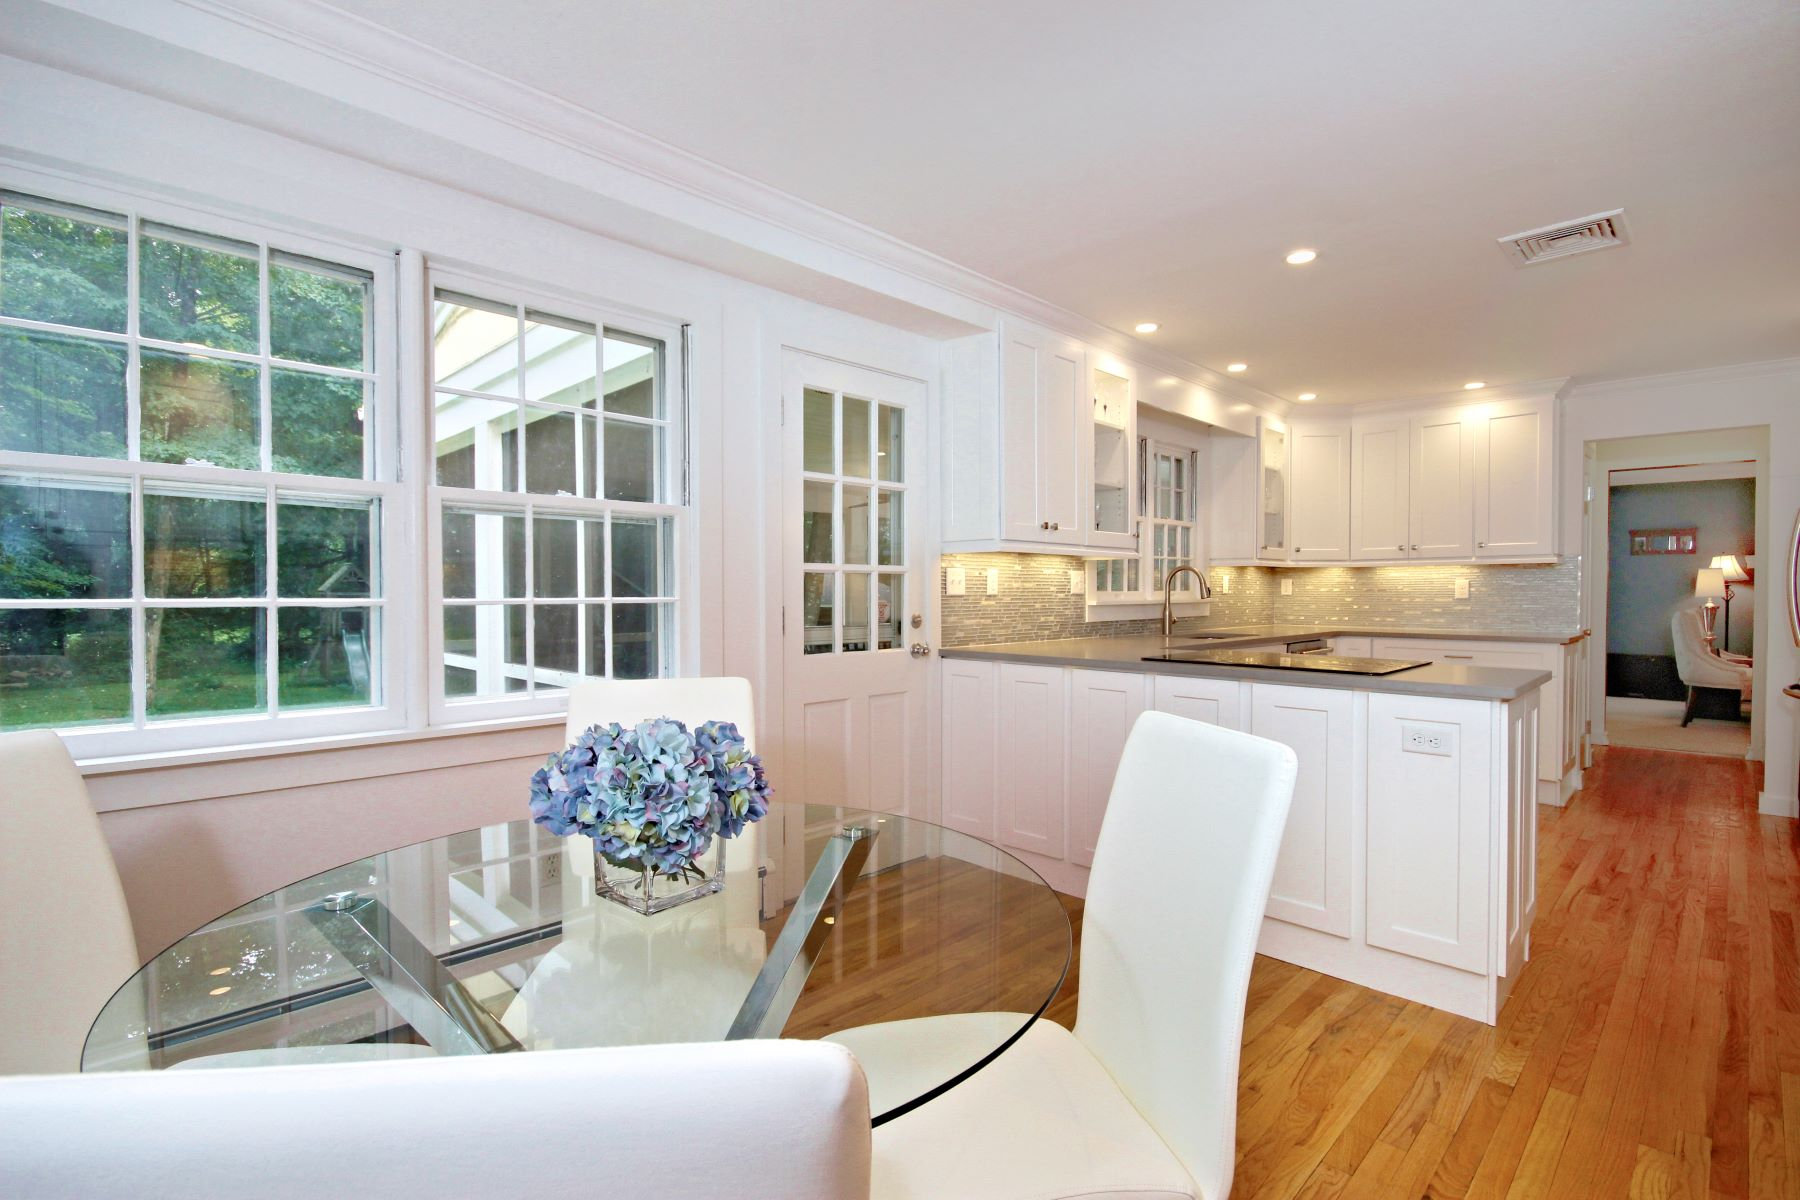 Single Family Homes for Sale at Great Colonial on One of the Most Coveted Streets in Lower Weston 33 Norfield Rd Weston, Connecticut 06883 United States